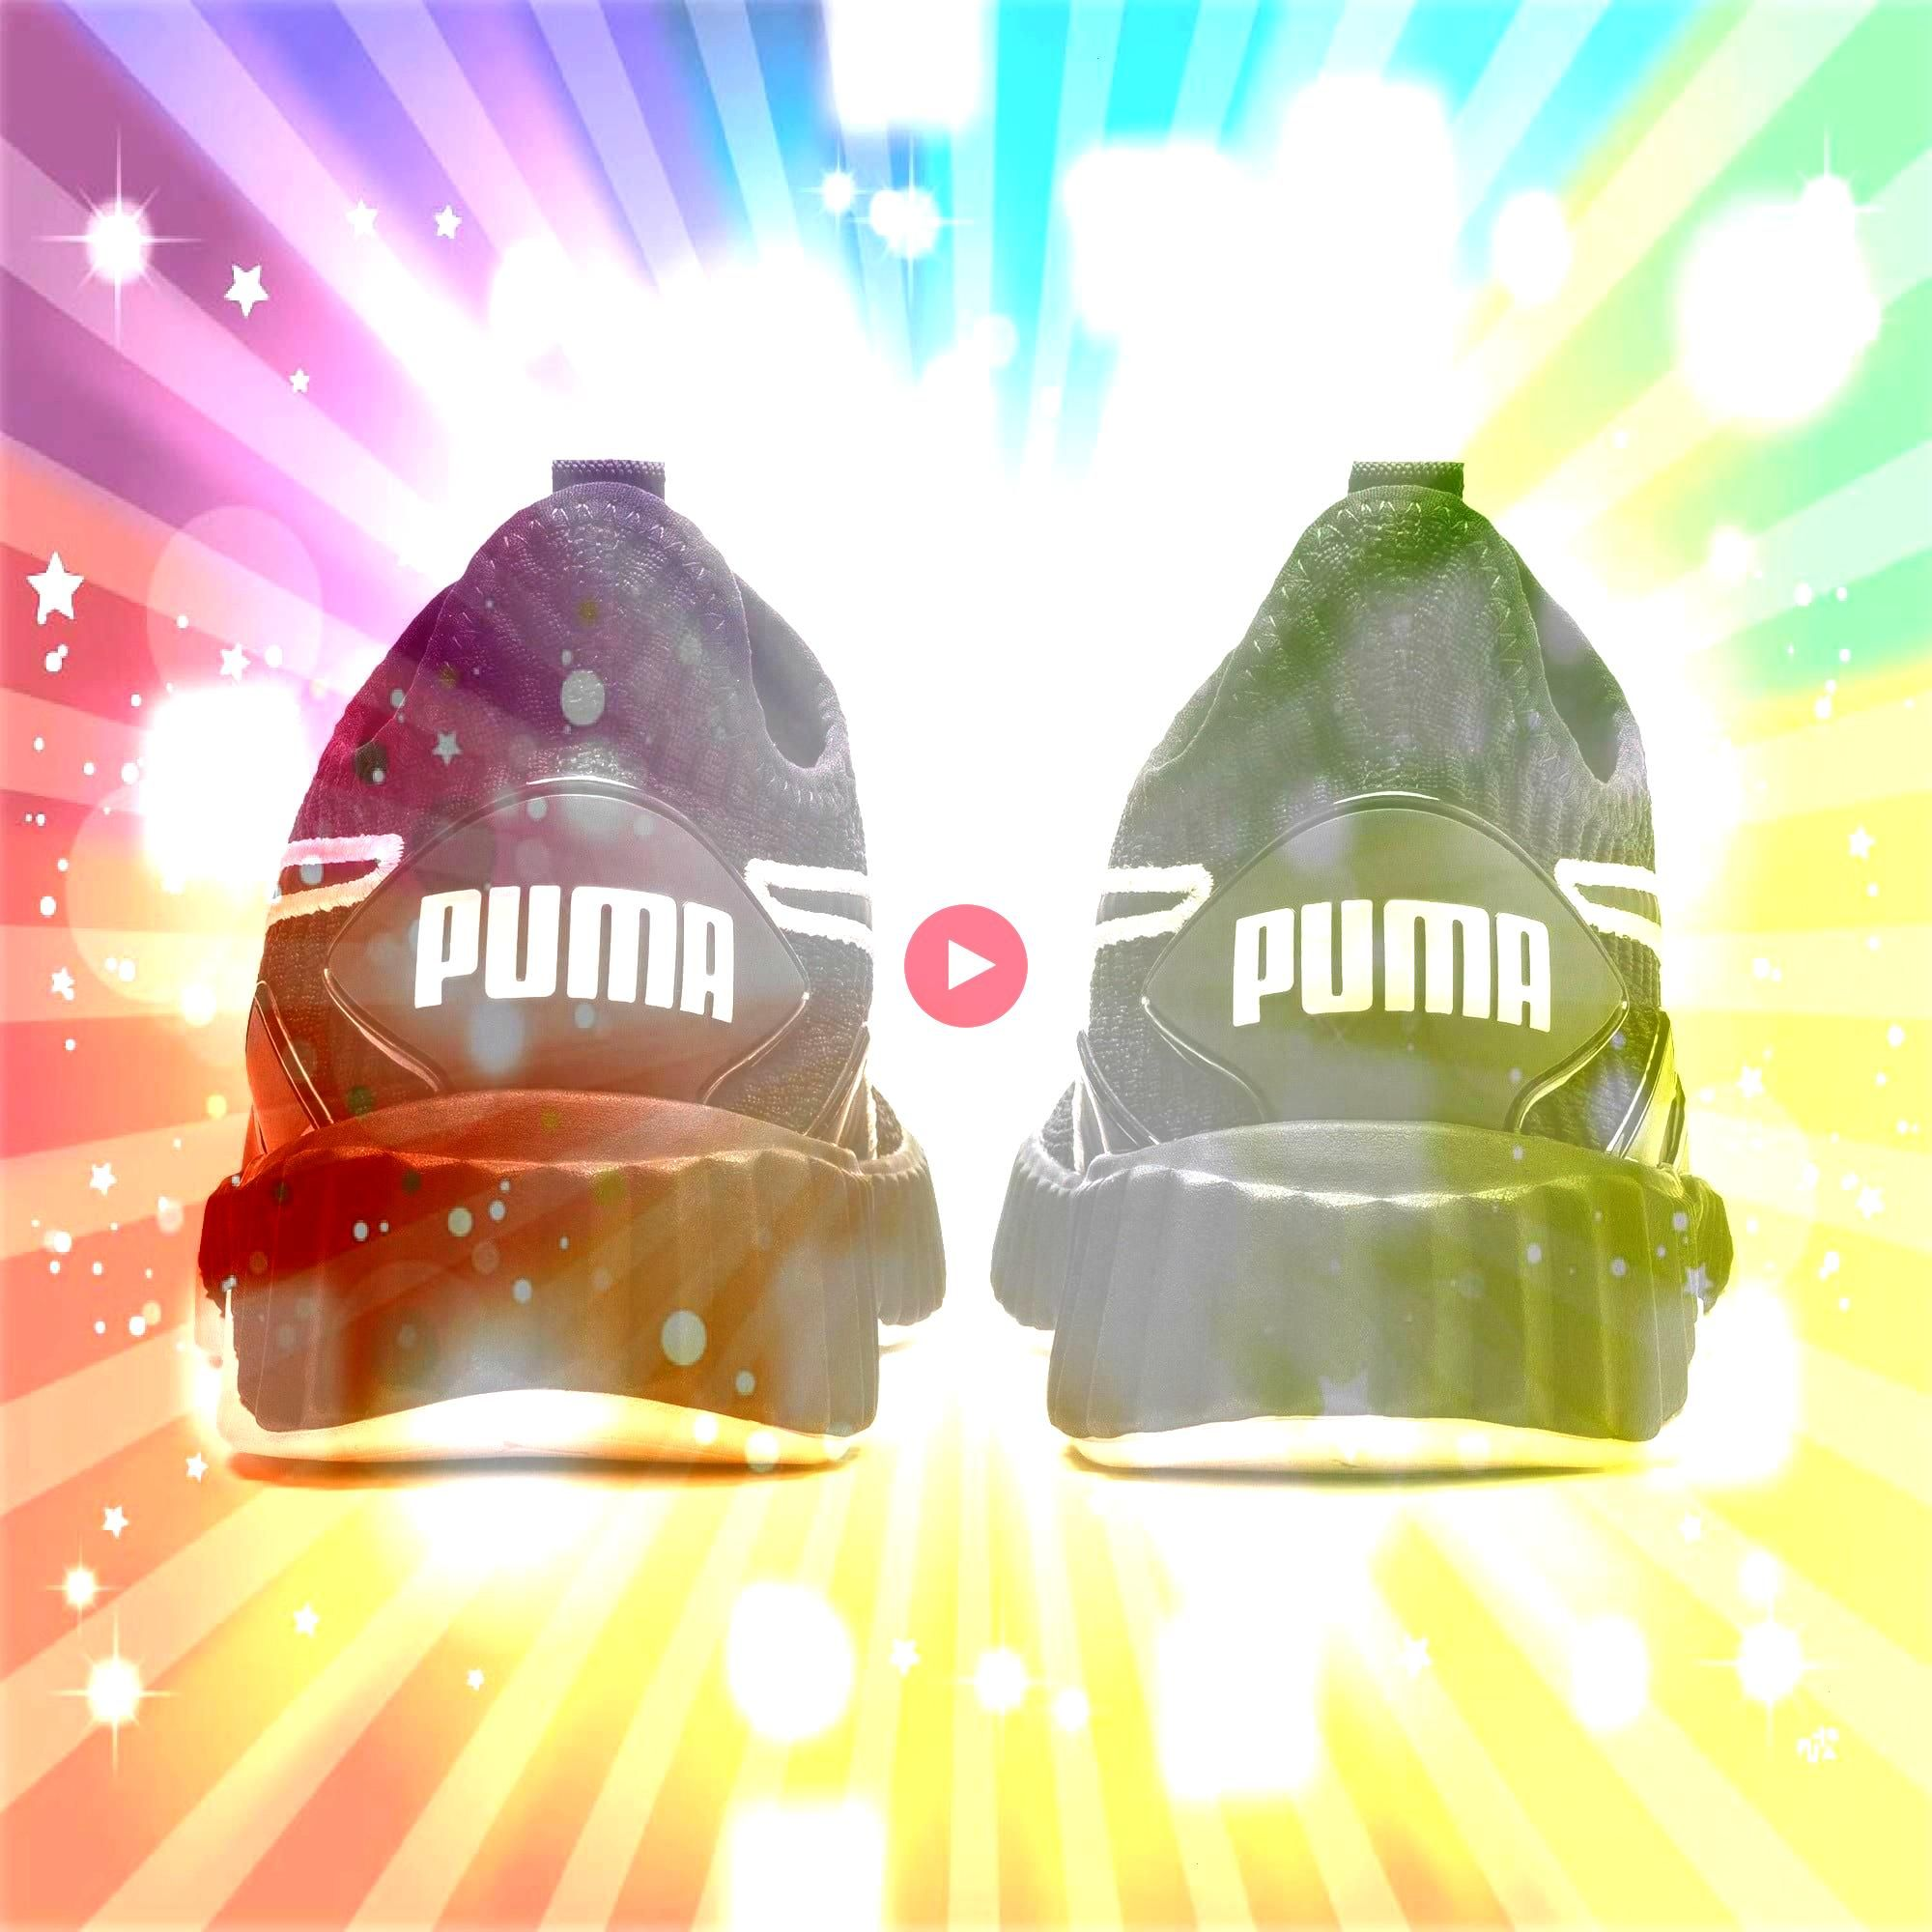 Womens Trainers in BlackPastel Parchment size 35 PUMA Defy Damen Sneaker in Schwarz  Pastell Pergament Größe 35PUMA Defy Womens Trainers in BlackPastel Parchme...